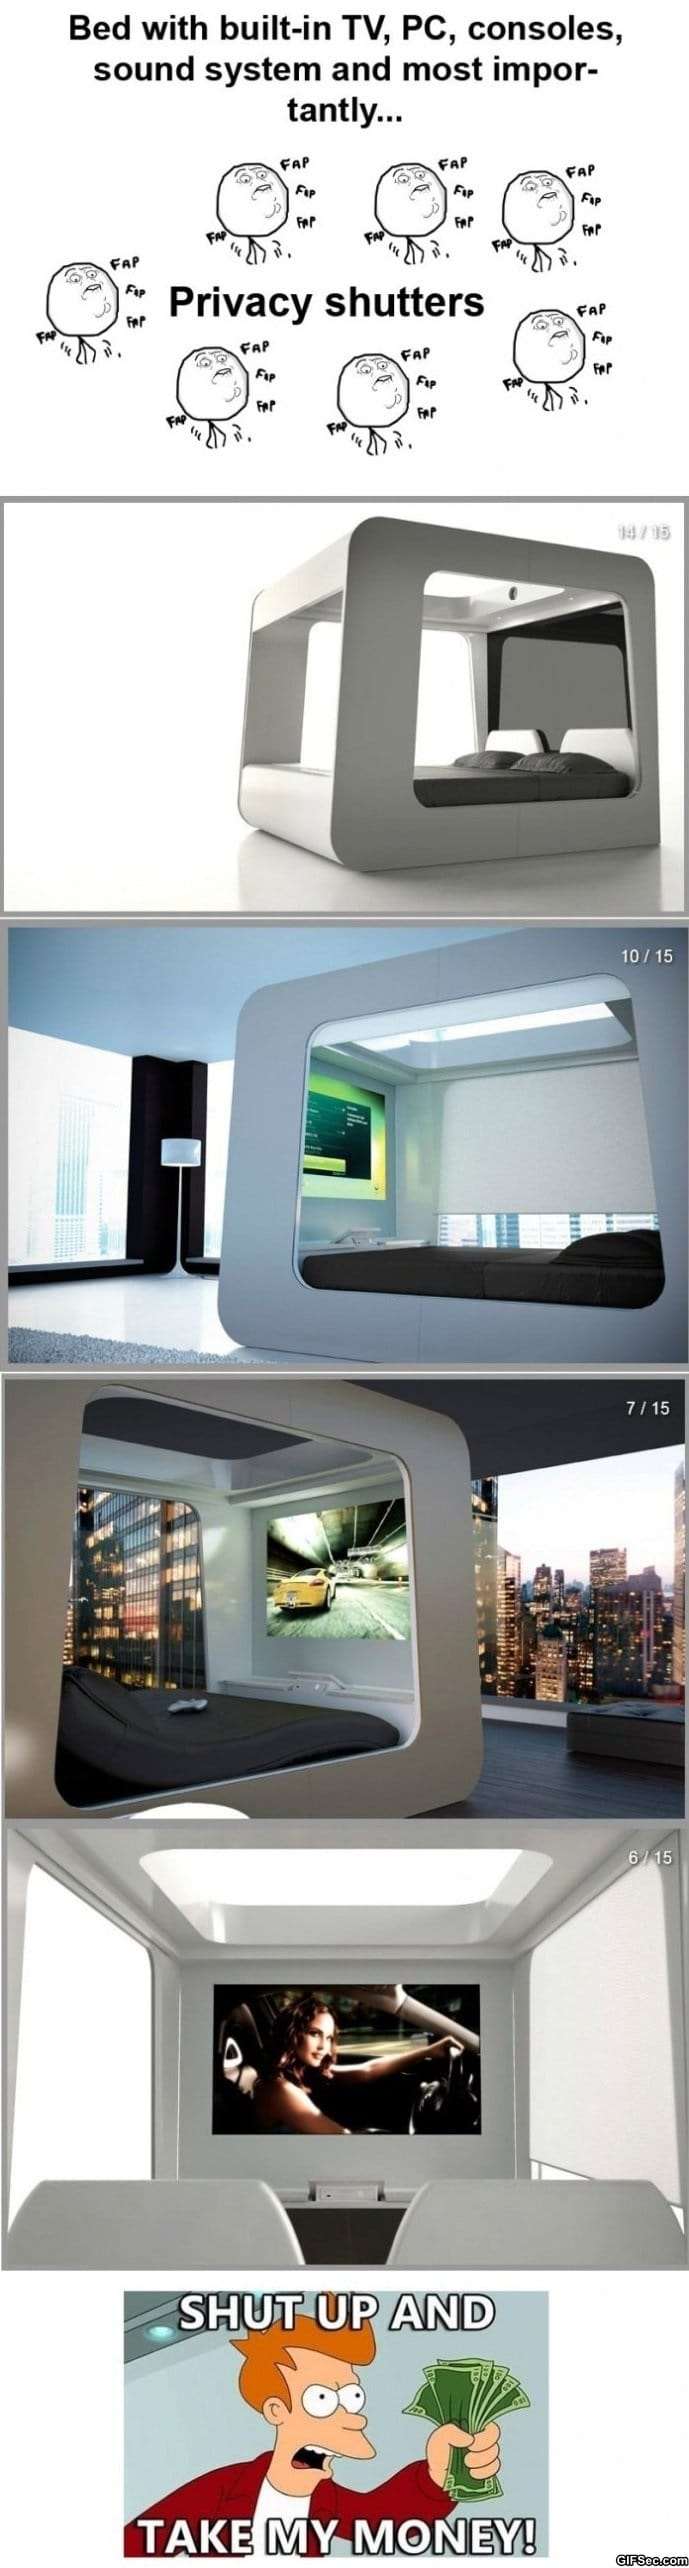 best-bed-ever